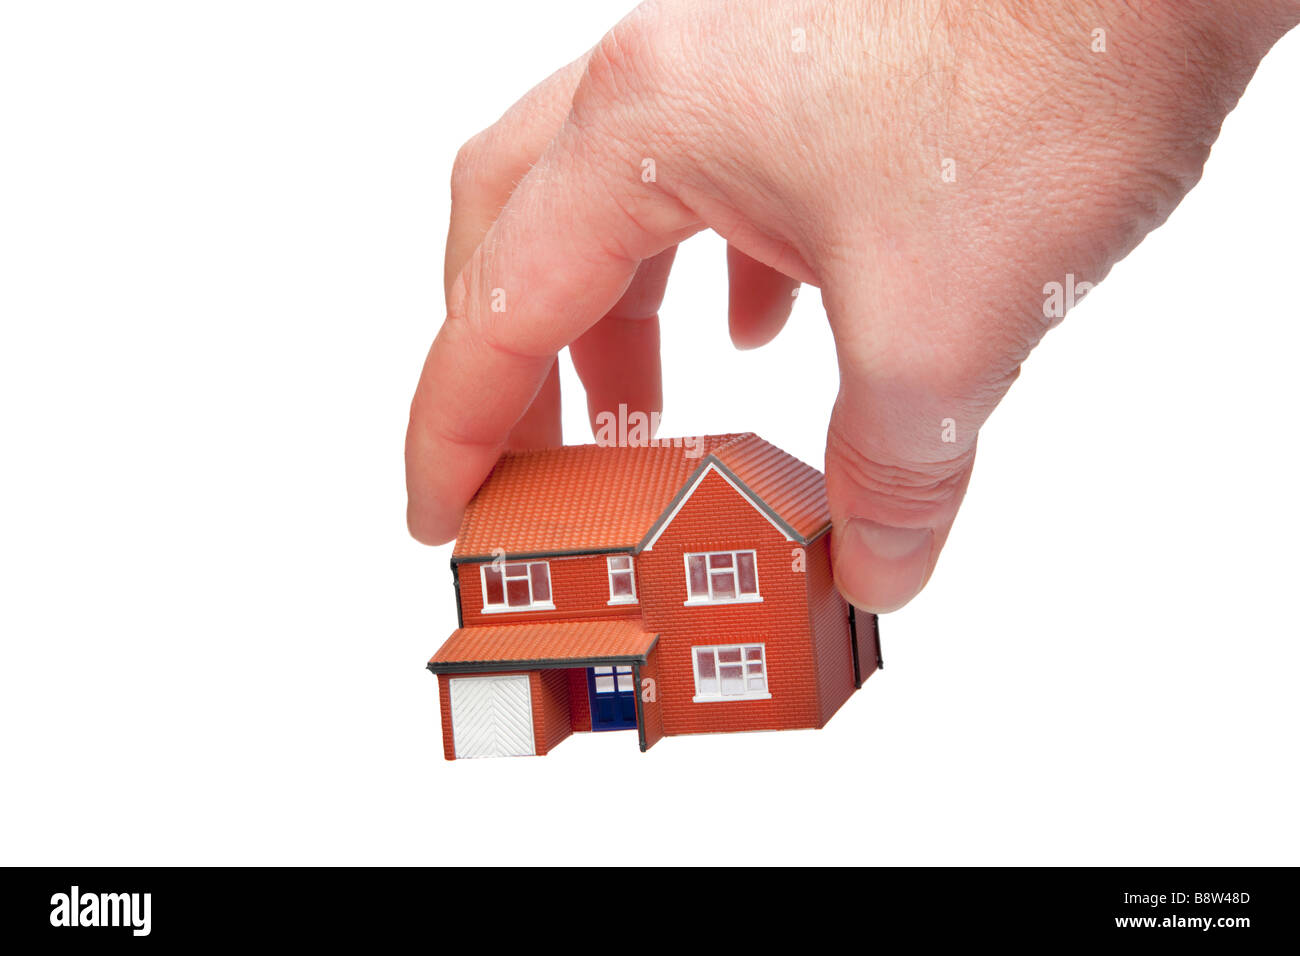 Hand picking up a small house isolated on a white background - Stock Image